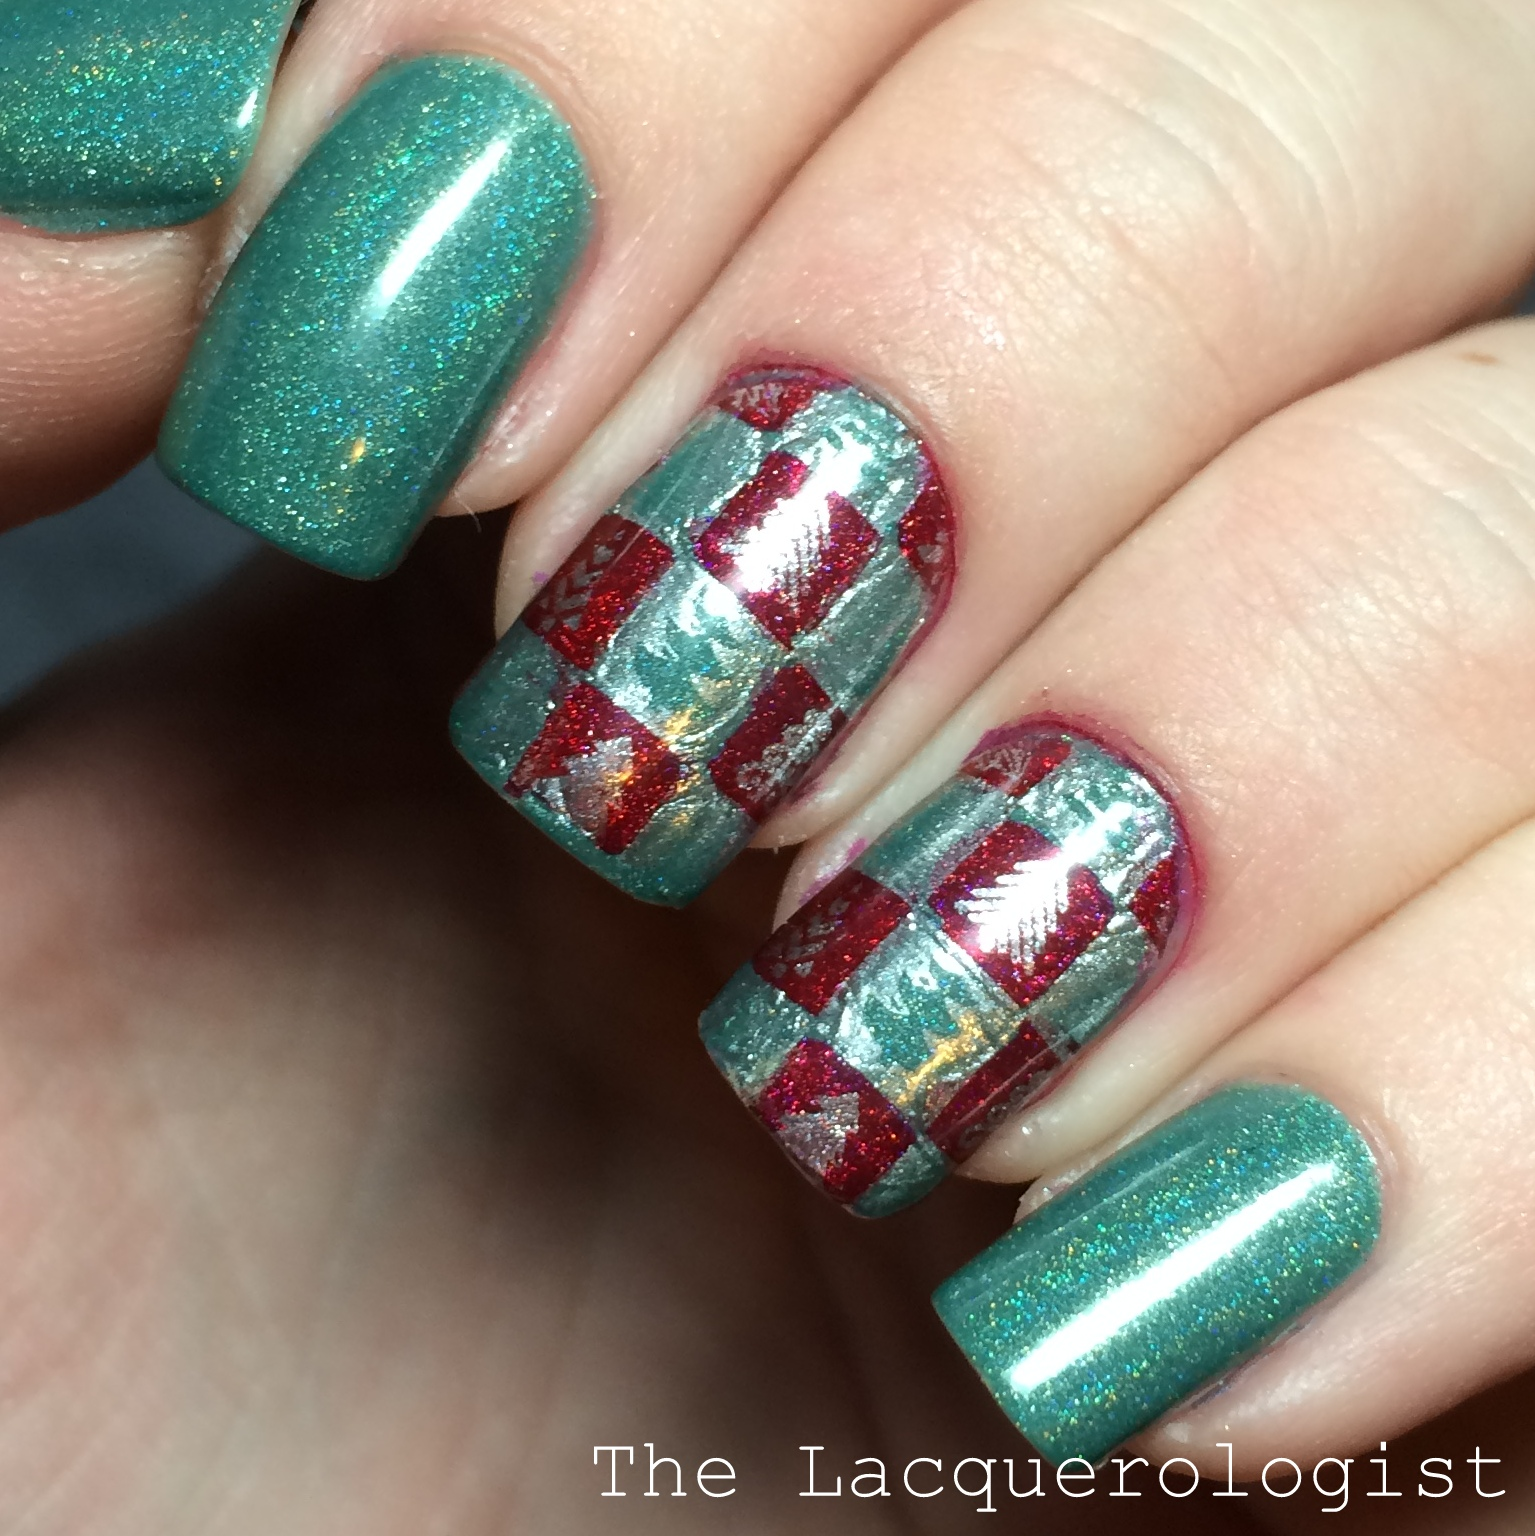 Wrapping Paper Nails inspired by Copy Cat Nails! • Casual Contrast